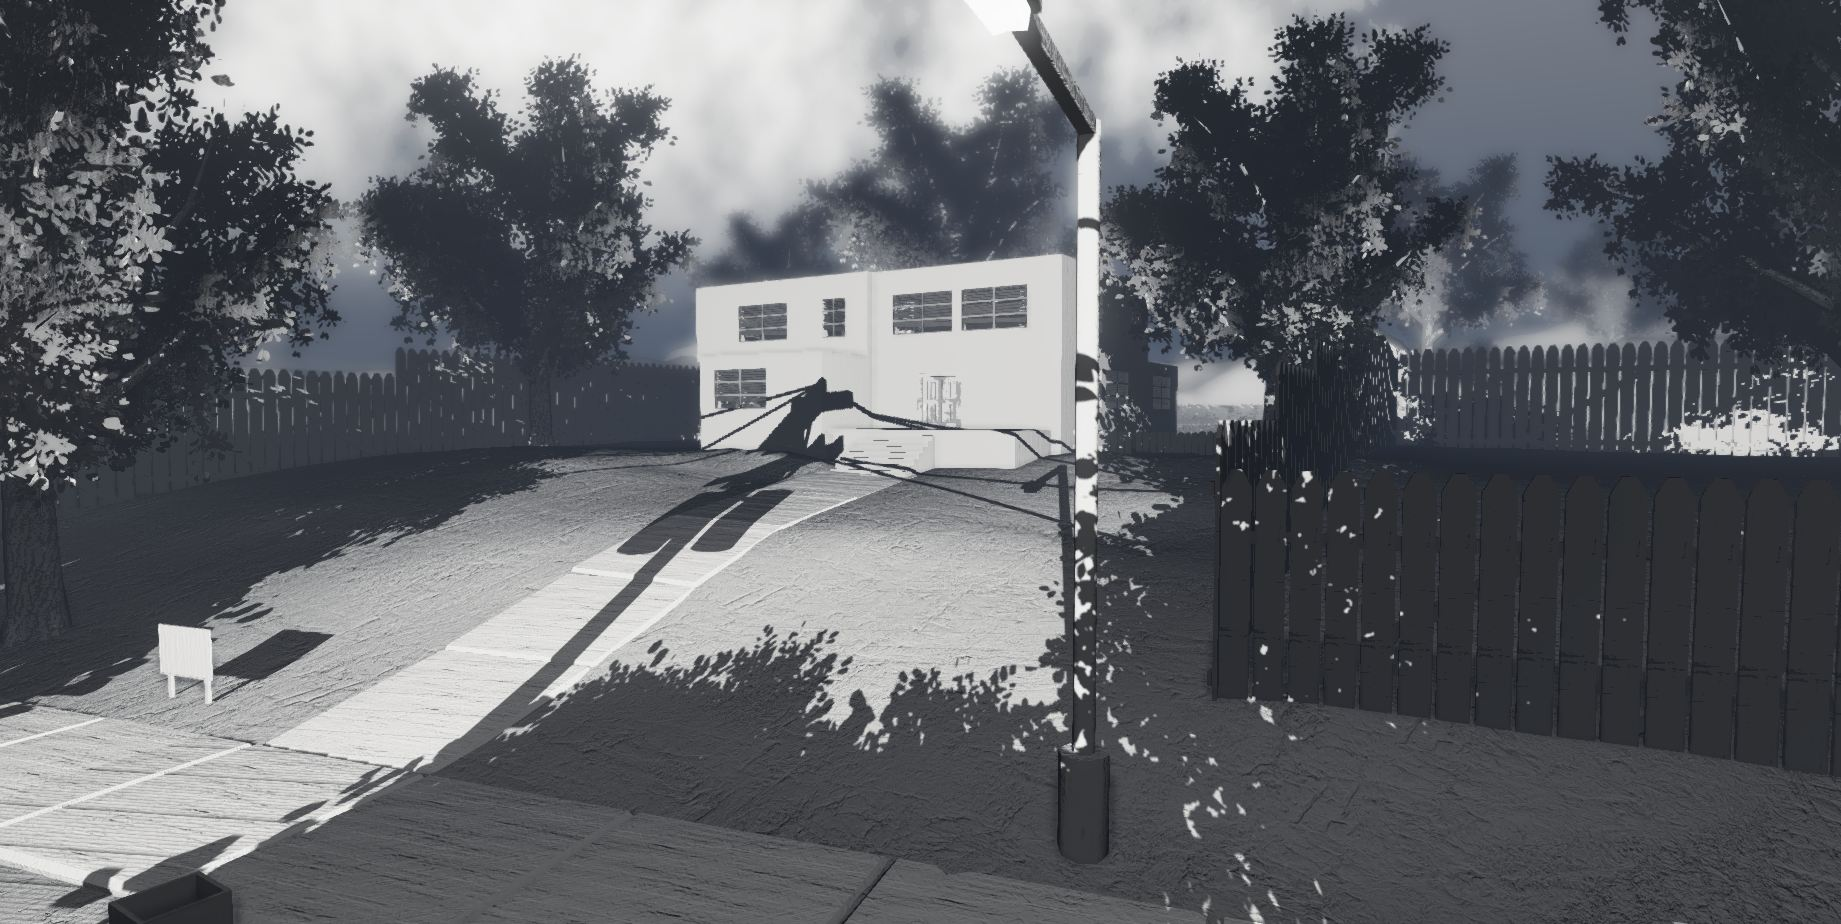 The original version of Reflections in Unreal Engine 3 in March of 2012